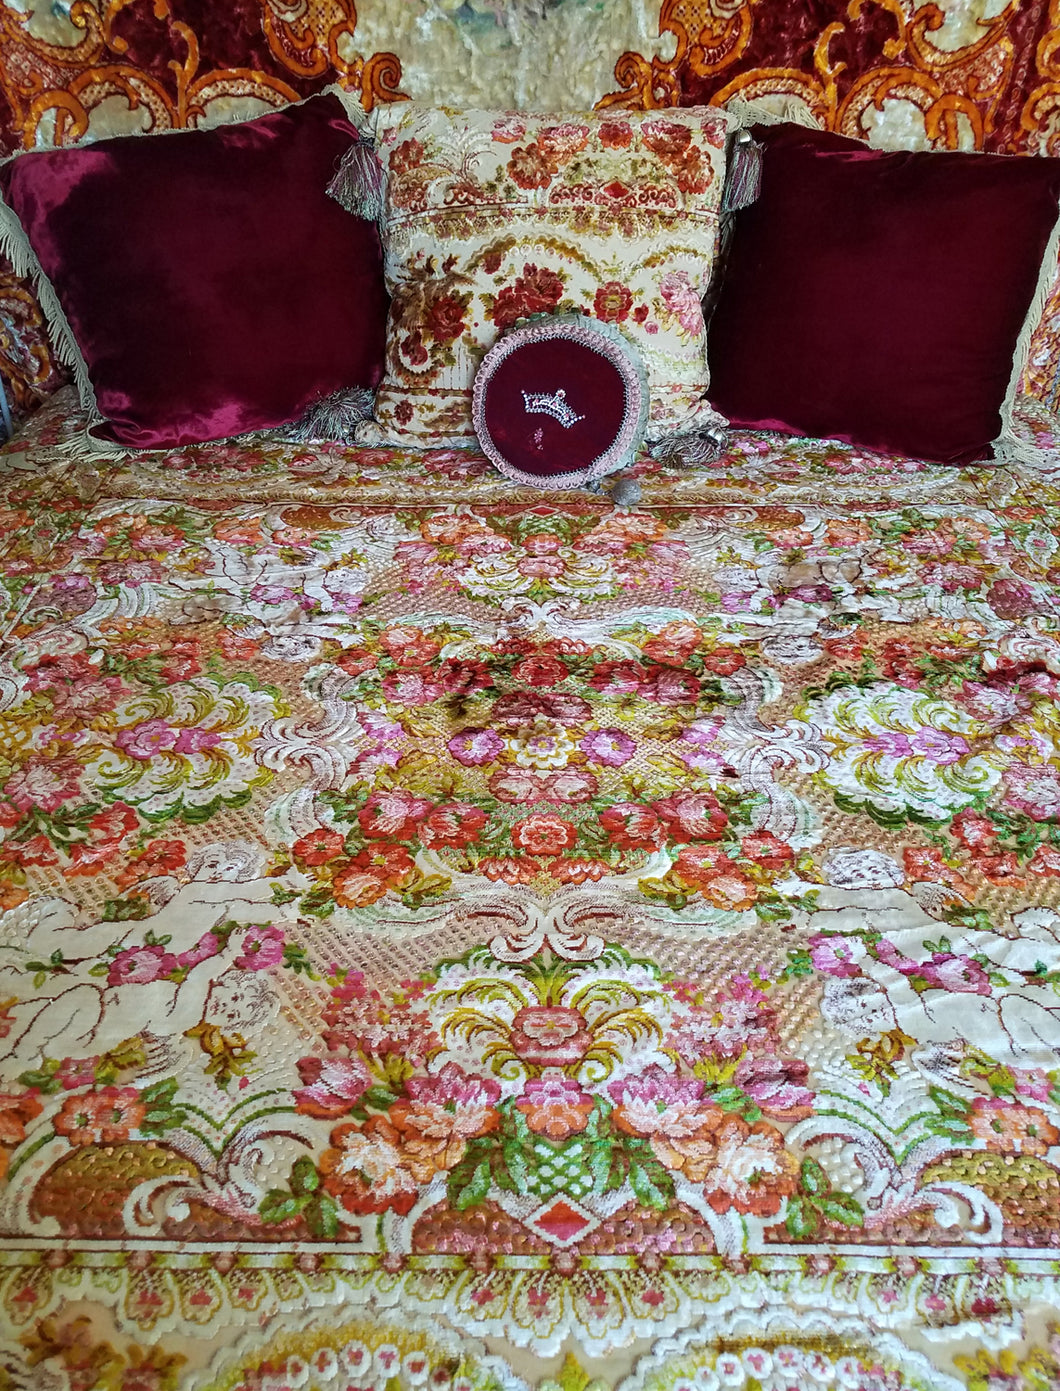 Italian Velvet Bedspread or Wedding Blanket, Pre-WWII, Excellent Condition, Full/Queen, 87.5